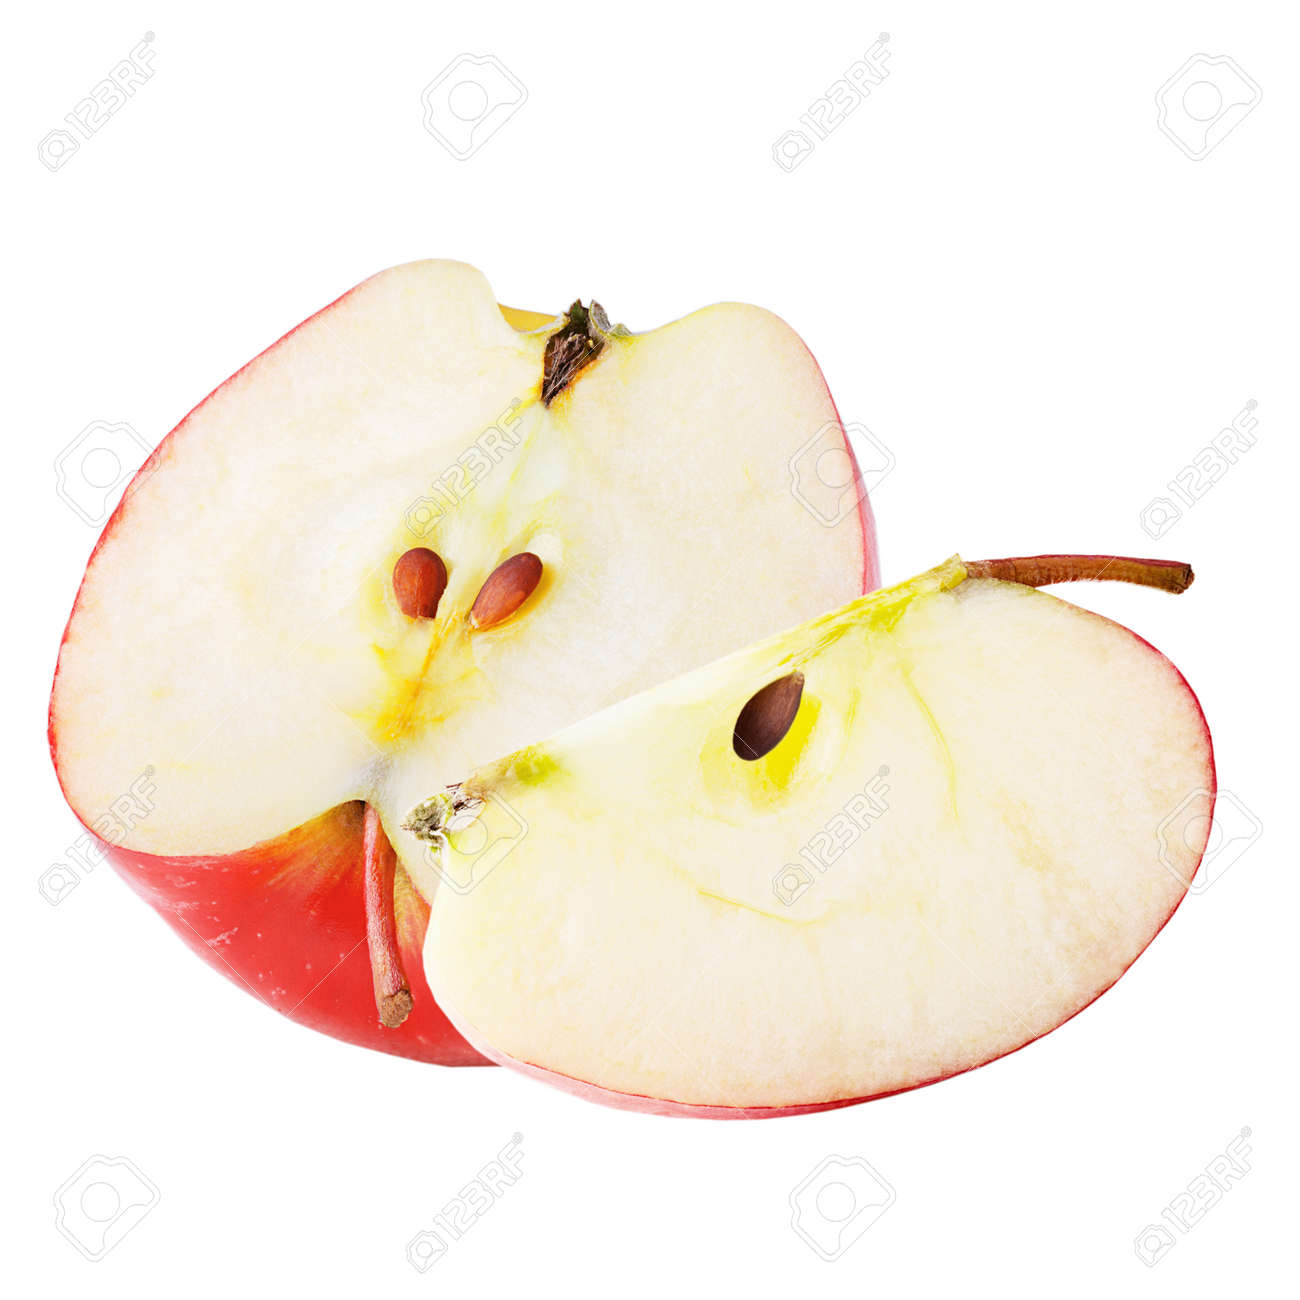 Isolated apples. Freshly slices apple isolated on white background with clipping path as package design element. Archivio Fotografico - 97018305